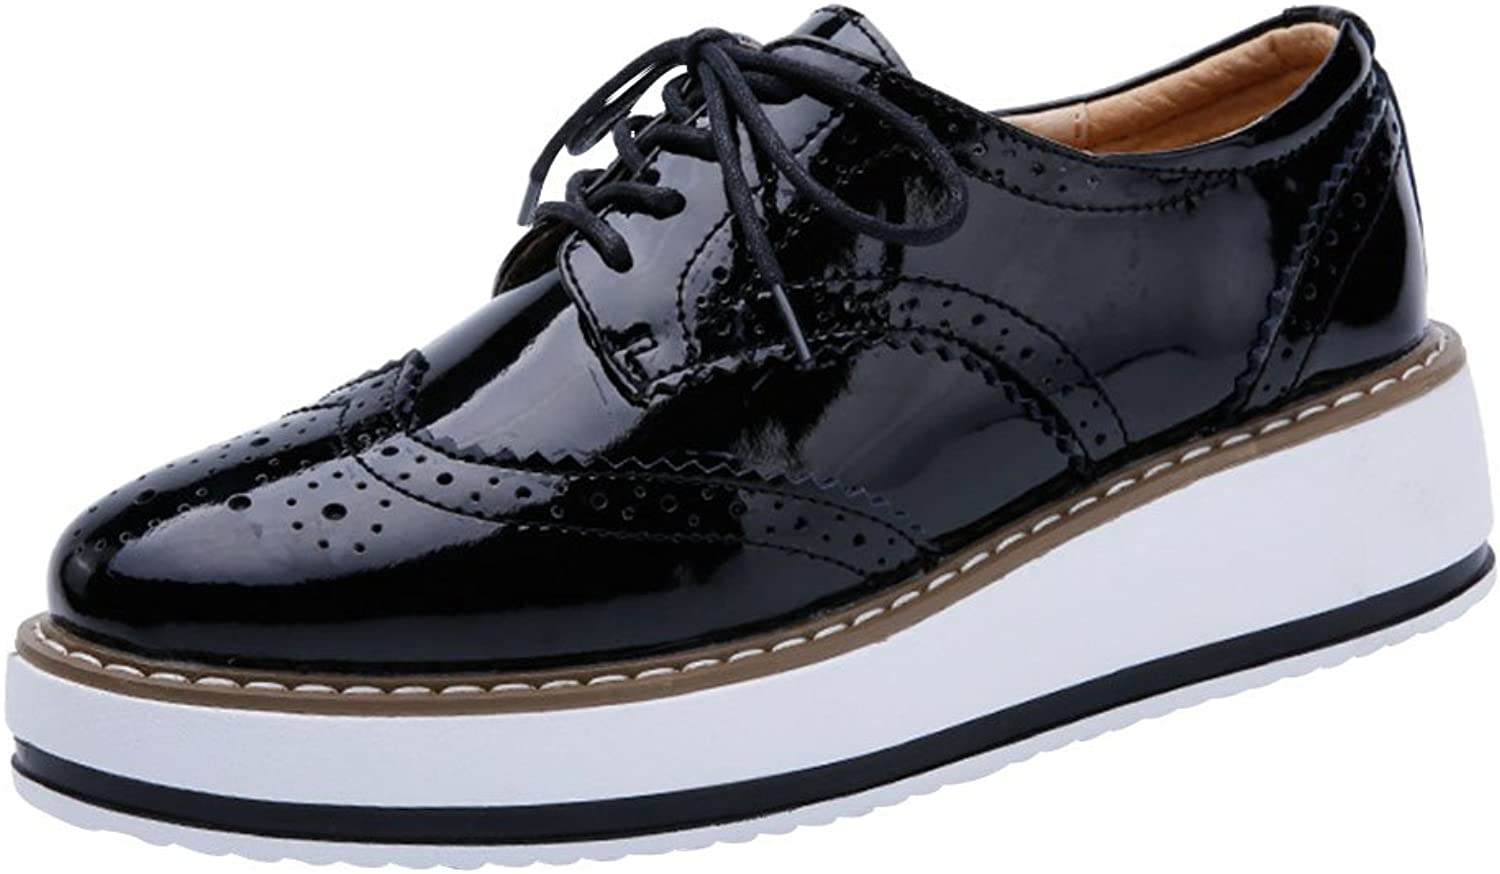 Sekesin Women's Trendy Round Toe Platform Oxfords Lace-Up Wingtips Brogues Sneakers shoes